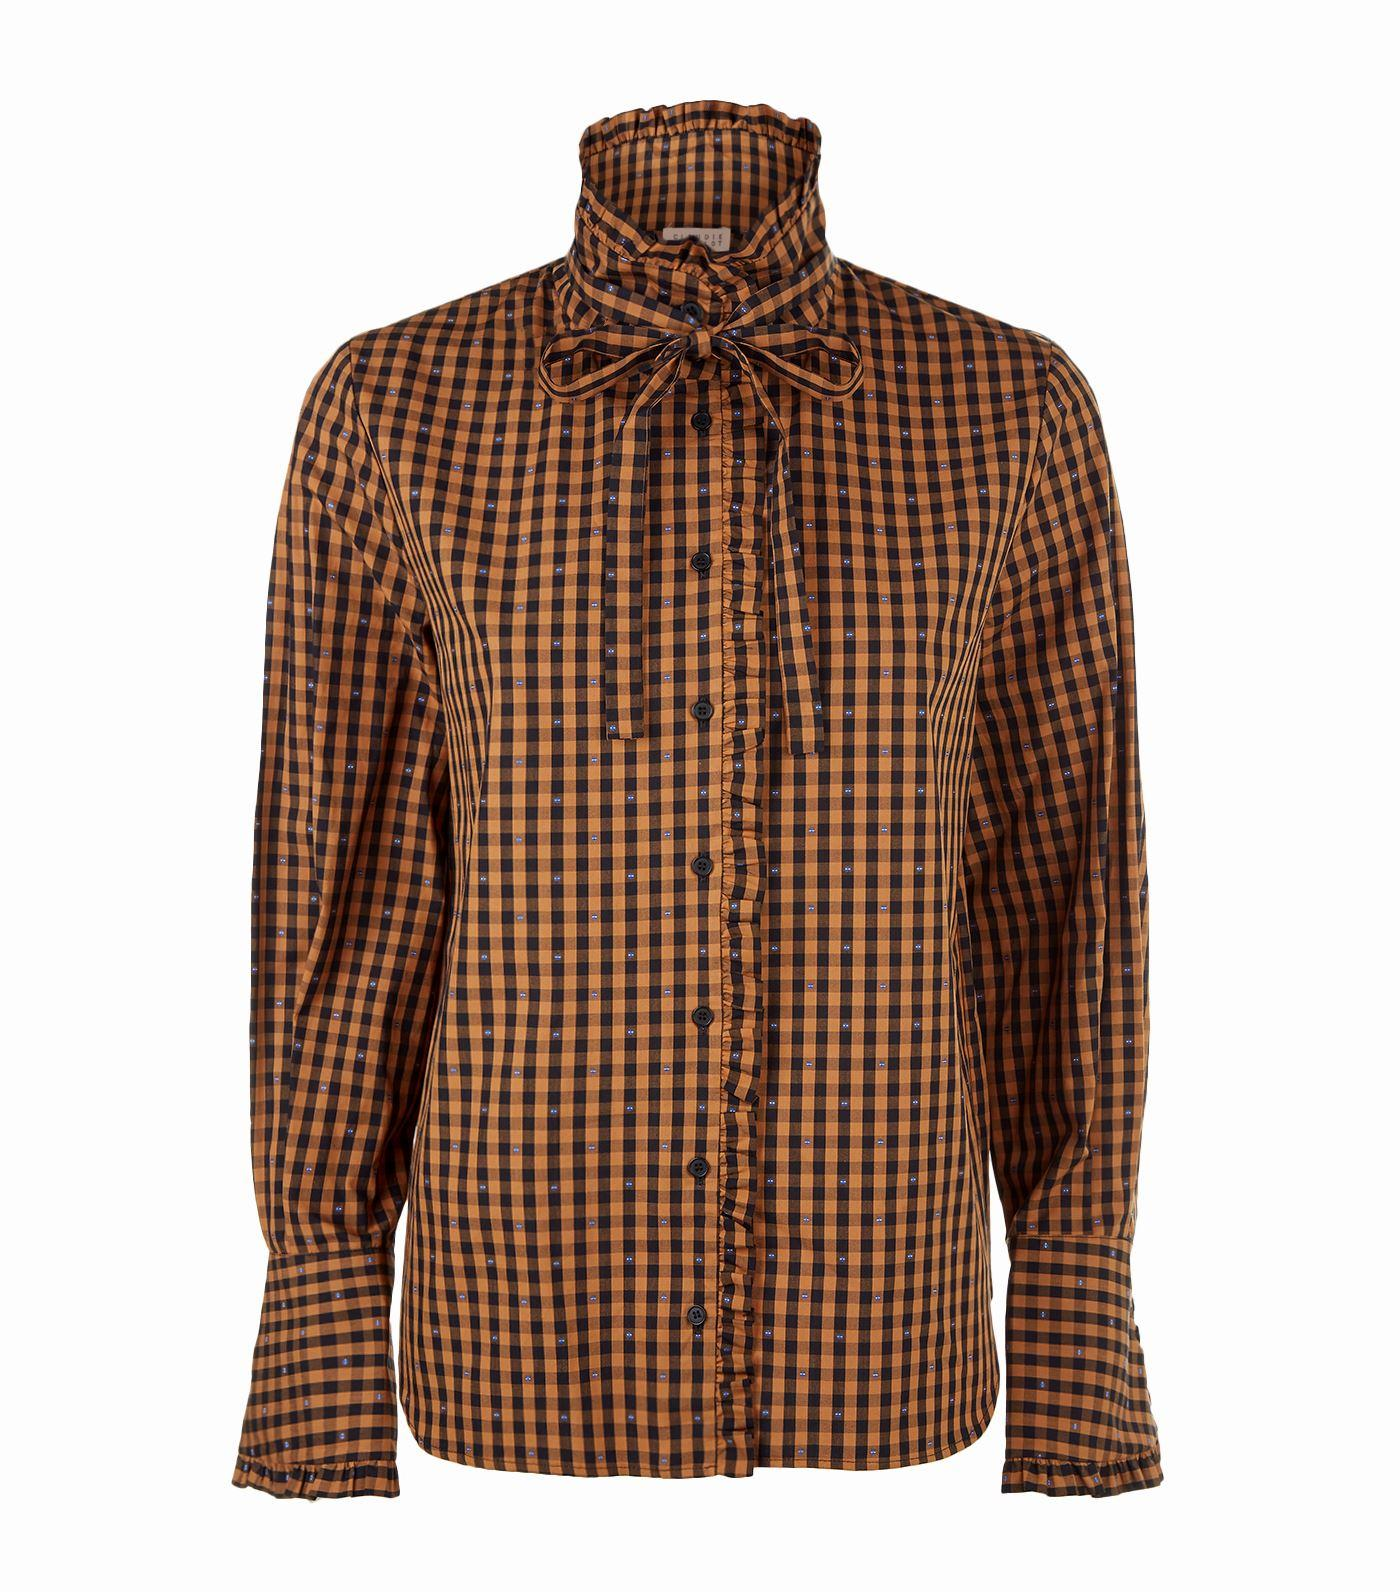 Claudie Pierlot Check Frilled Shirt In Nude